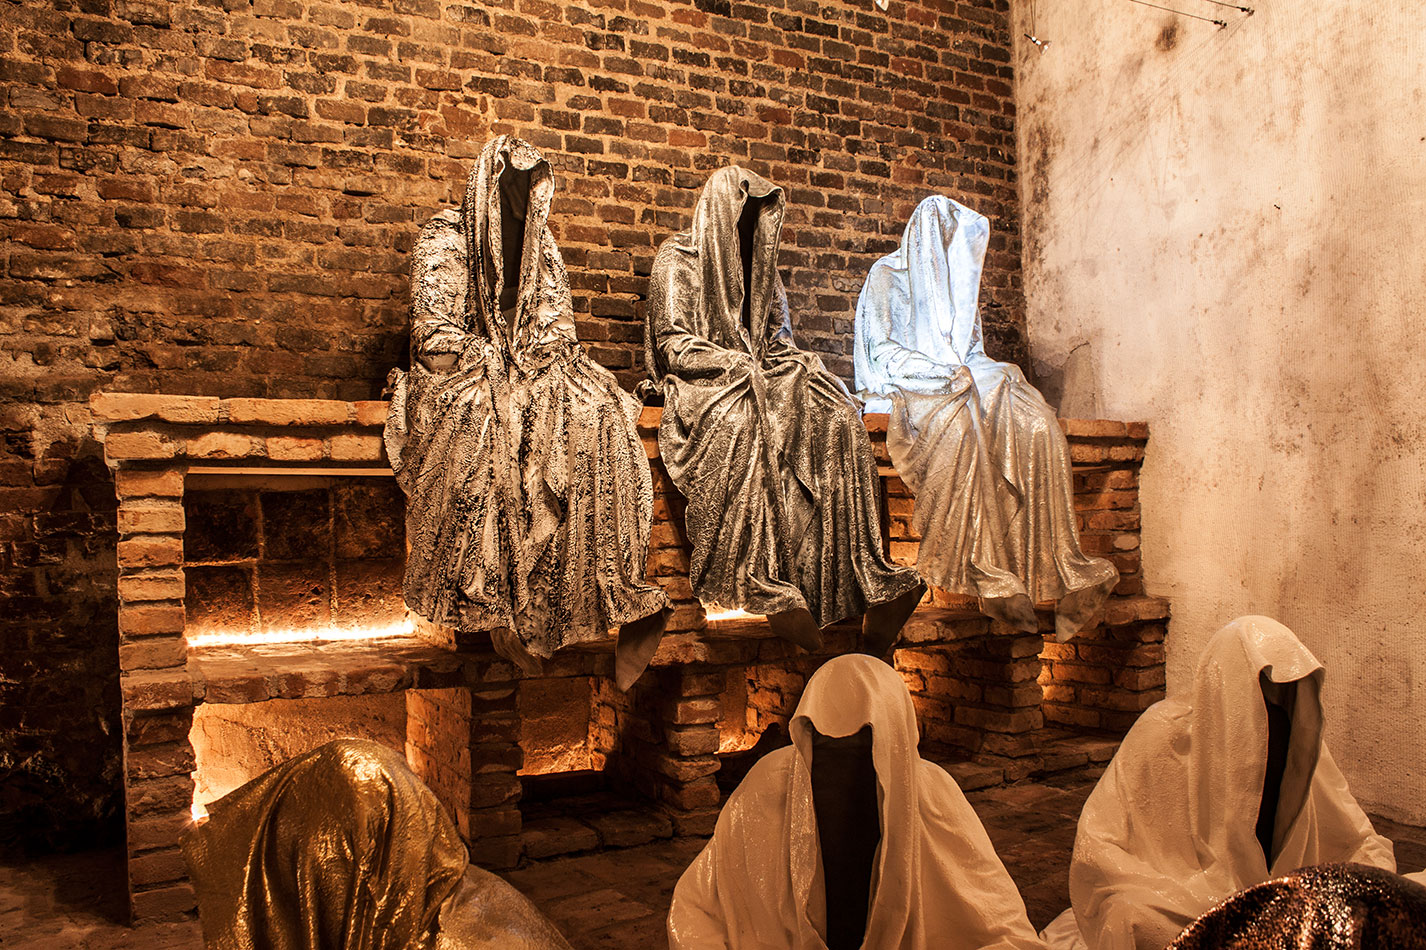 wine-cellar-galerie-artdealer--freller-guardians-of-time-manfred-kili-kielnhofer-contemporary-art-arts-light-design-sculpture-antique-show-statue-7906